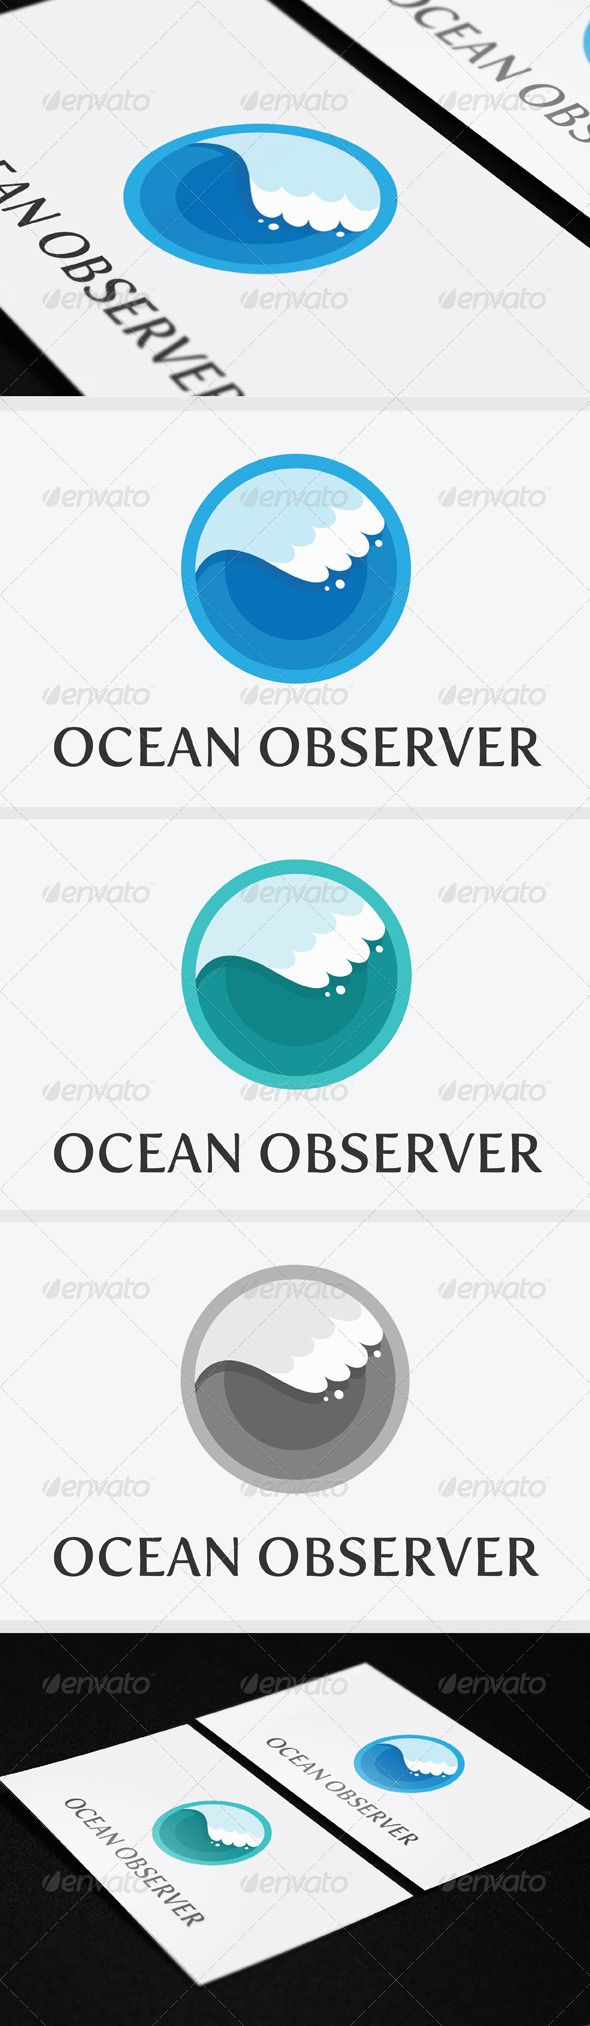 Ocean Observer Logo Template  #GraphicRiver         Ocean Observer Logo Template, an excellent logo template suitable for any business. 100% vector easy to change color, text and resize (AI & EPS). The free font used in the design is Fertigo Pro Regular: exljbris /fertigo.html.     Created: 15December12 GraphicsFilesIncluded: VectorEPS #AIIllustrator Layered: Yes MinimumAdobeCSVersion: CS3 Resolution: Resizable Tags: animal #biology #blue